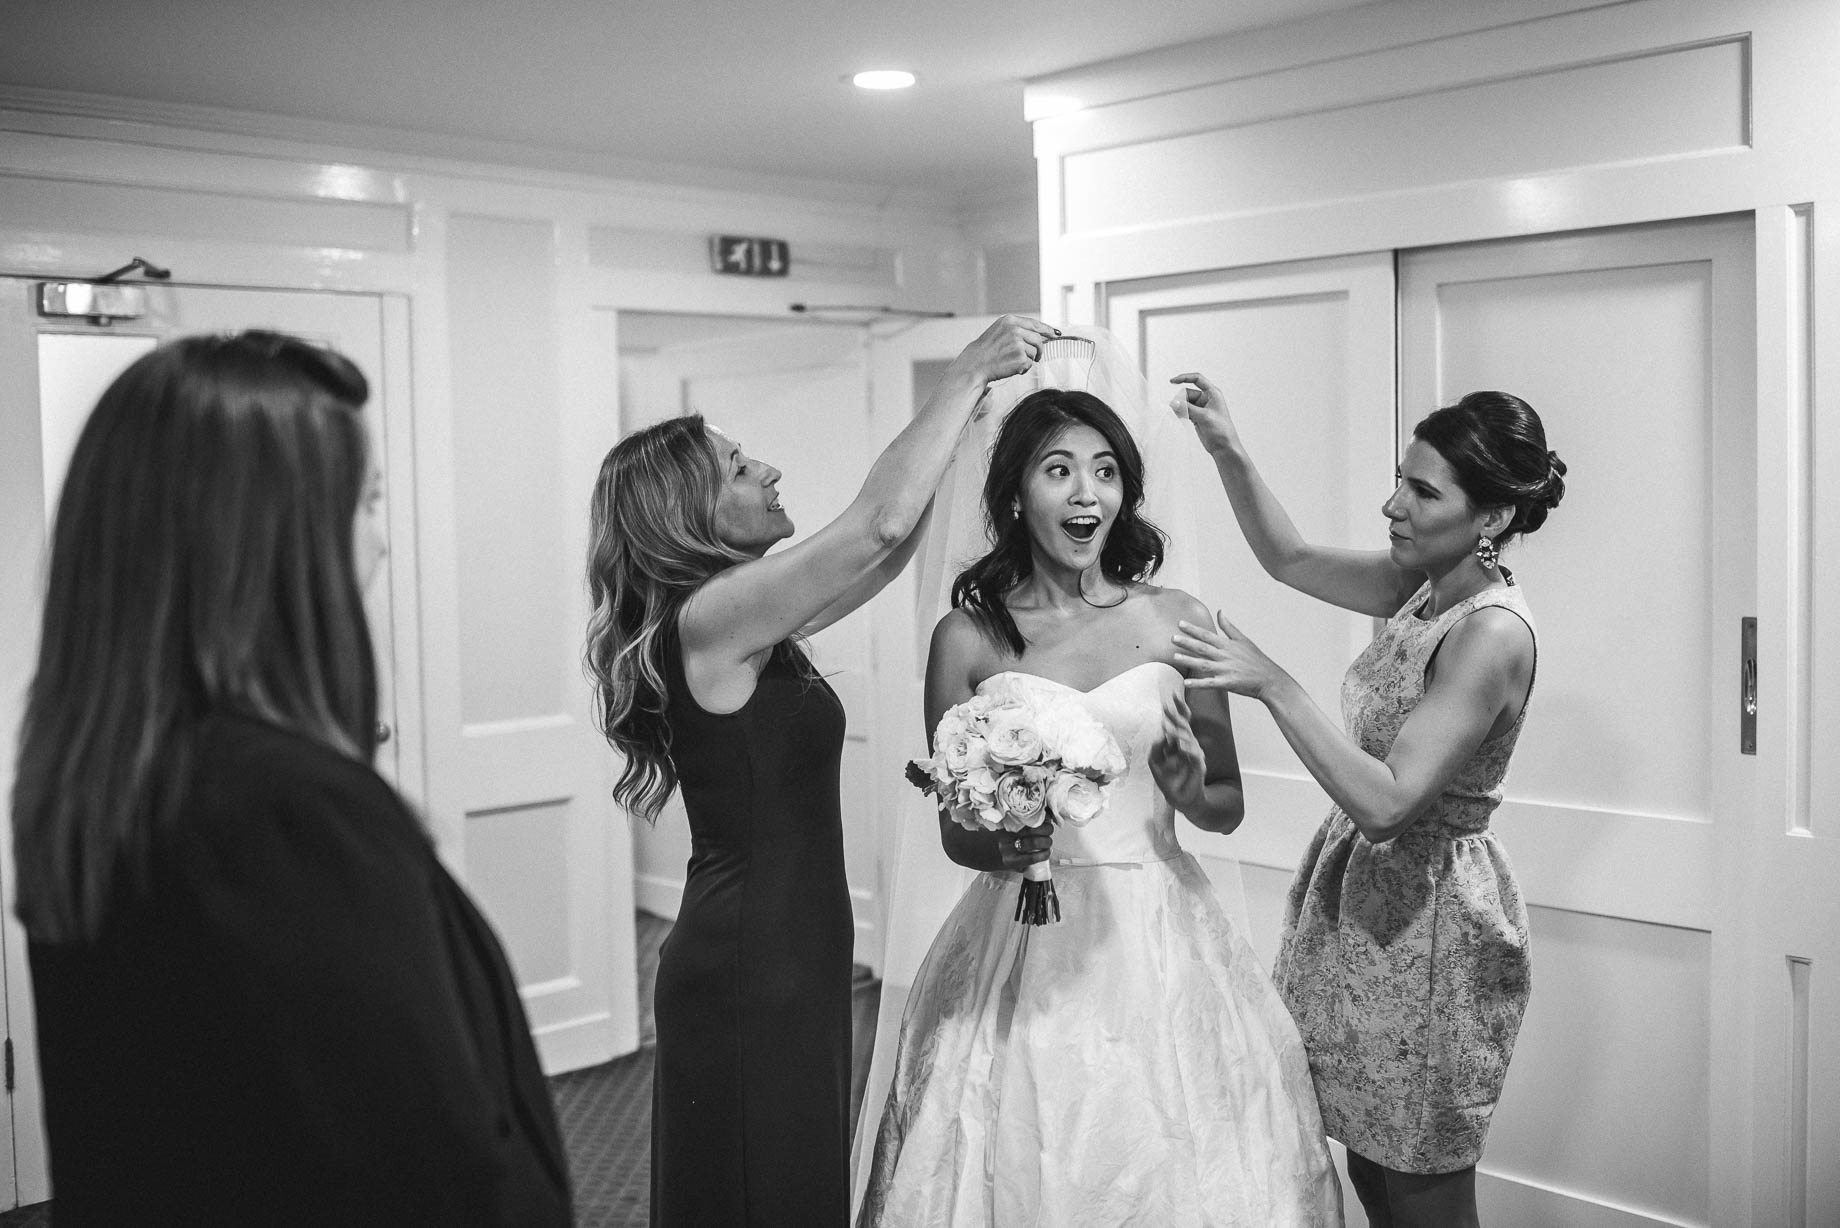 Kew Gardens wedding photography - Guy Collier Photography - Gloria and Frederik (34 of 173)